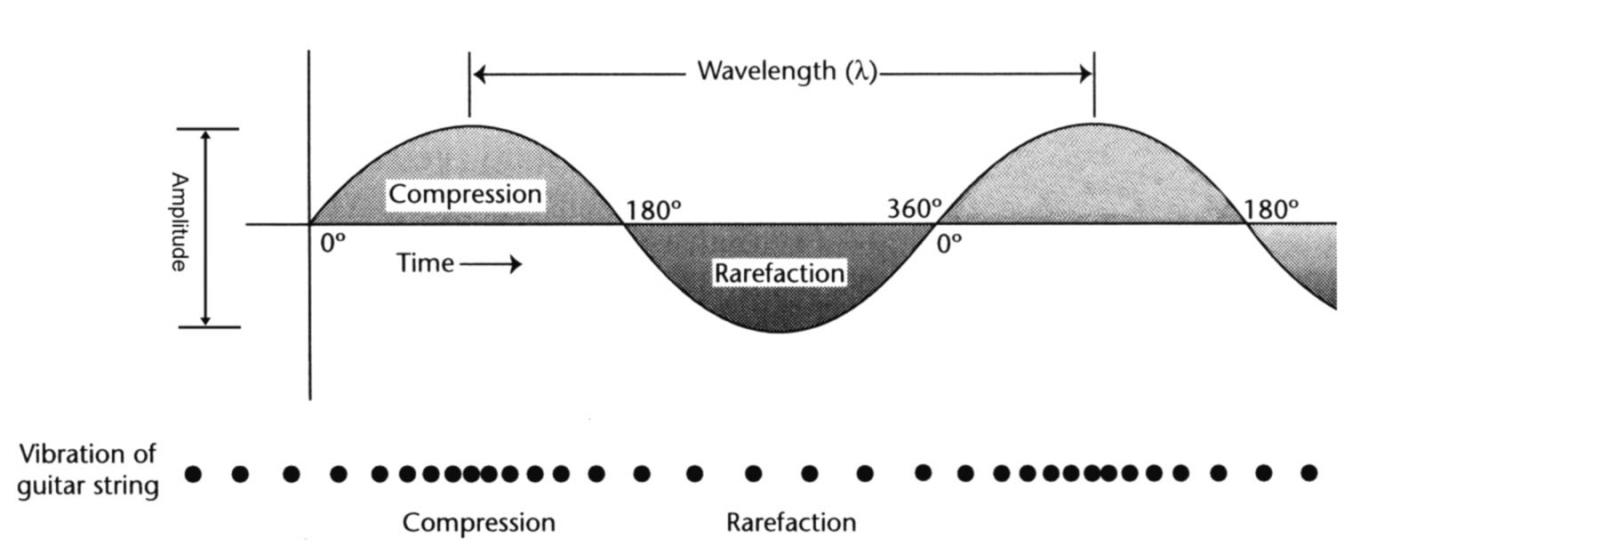 Sound Wave Compression And Rarefaction As Modeled By A Sine Is The Simplest Possible Diagram Of